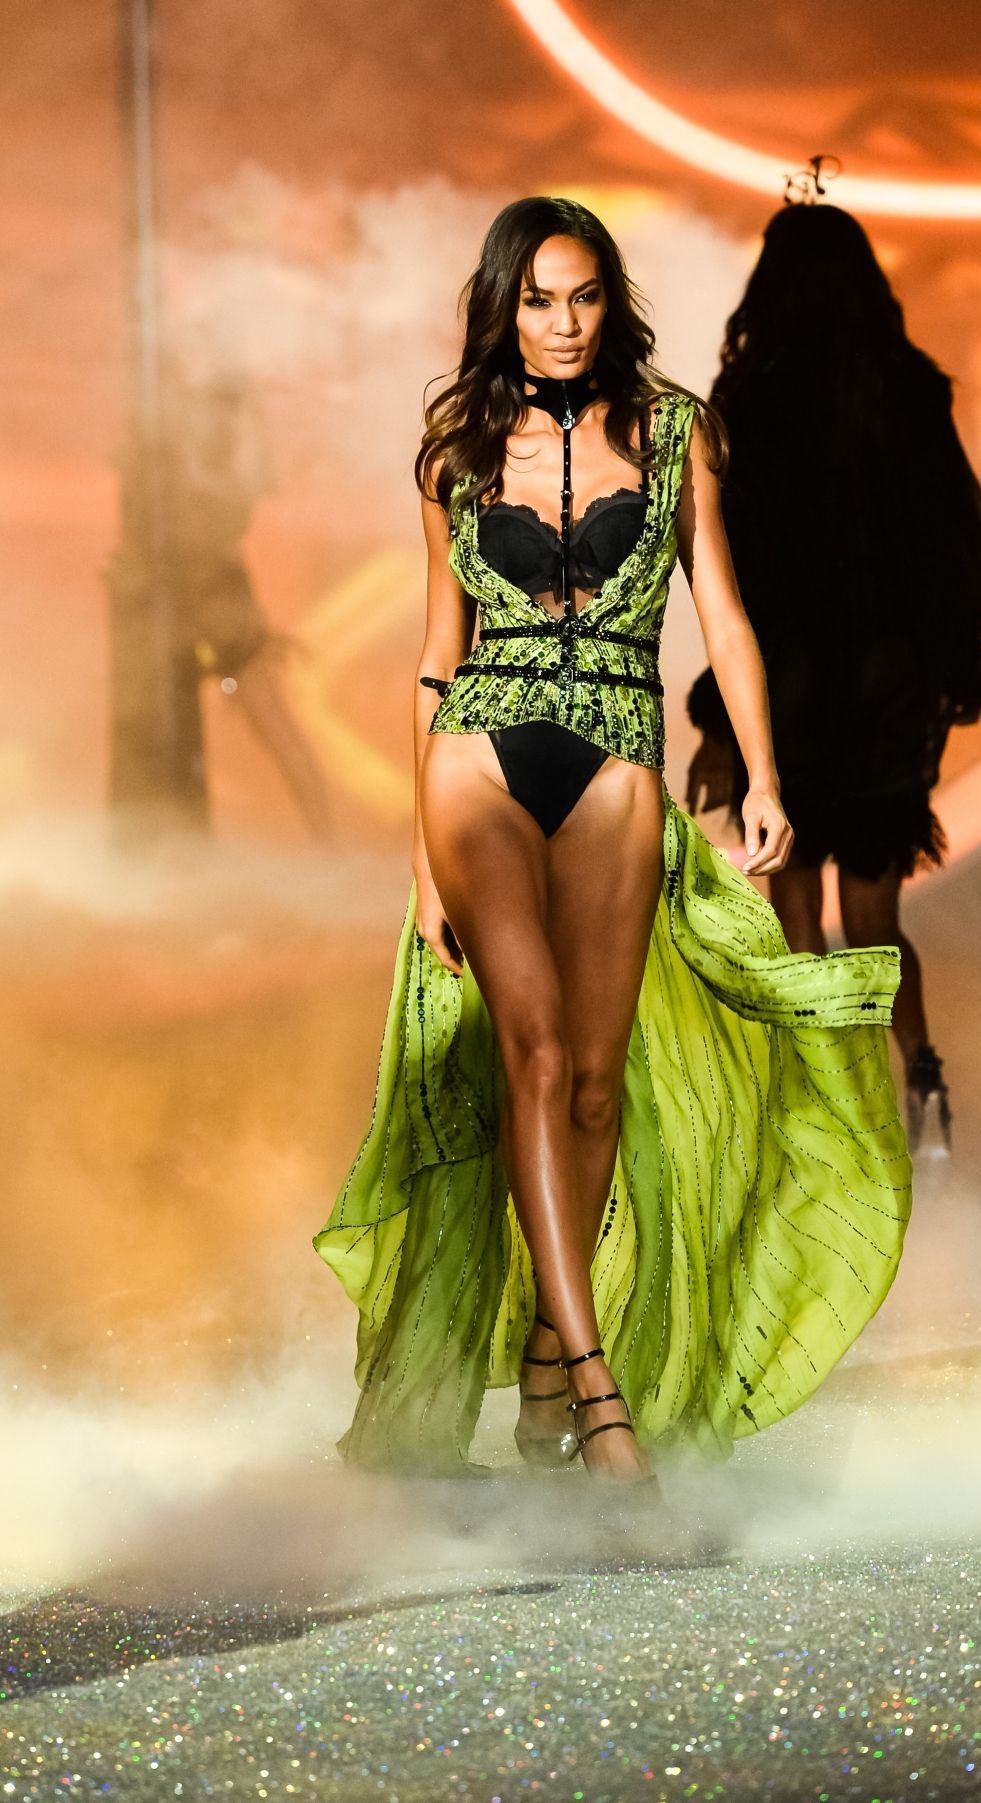 joan-smalls-at-2013-victoria-s-secret-fashion-show-in-new-york_10.jpg - 375.36 KB